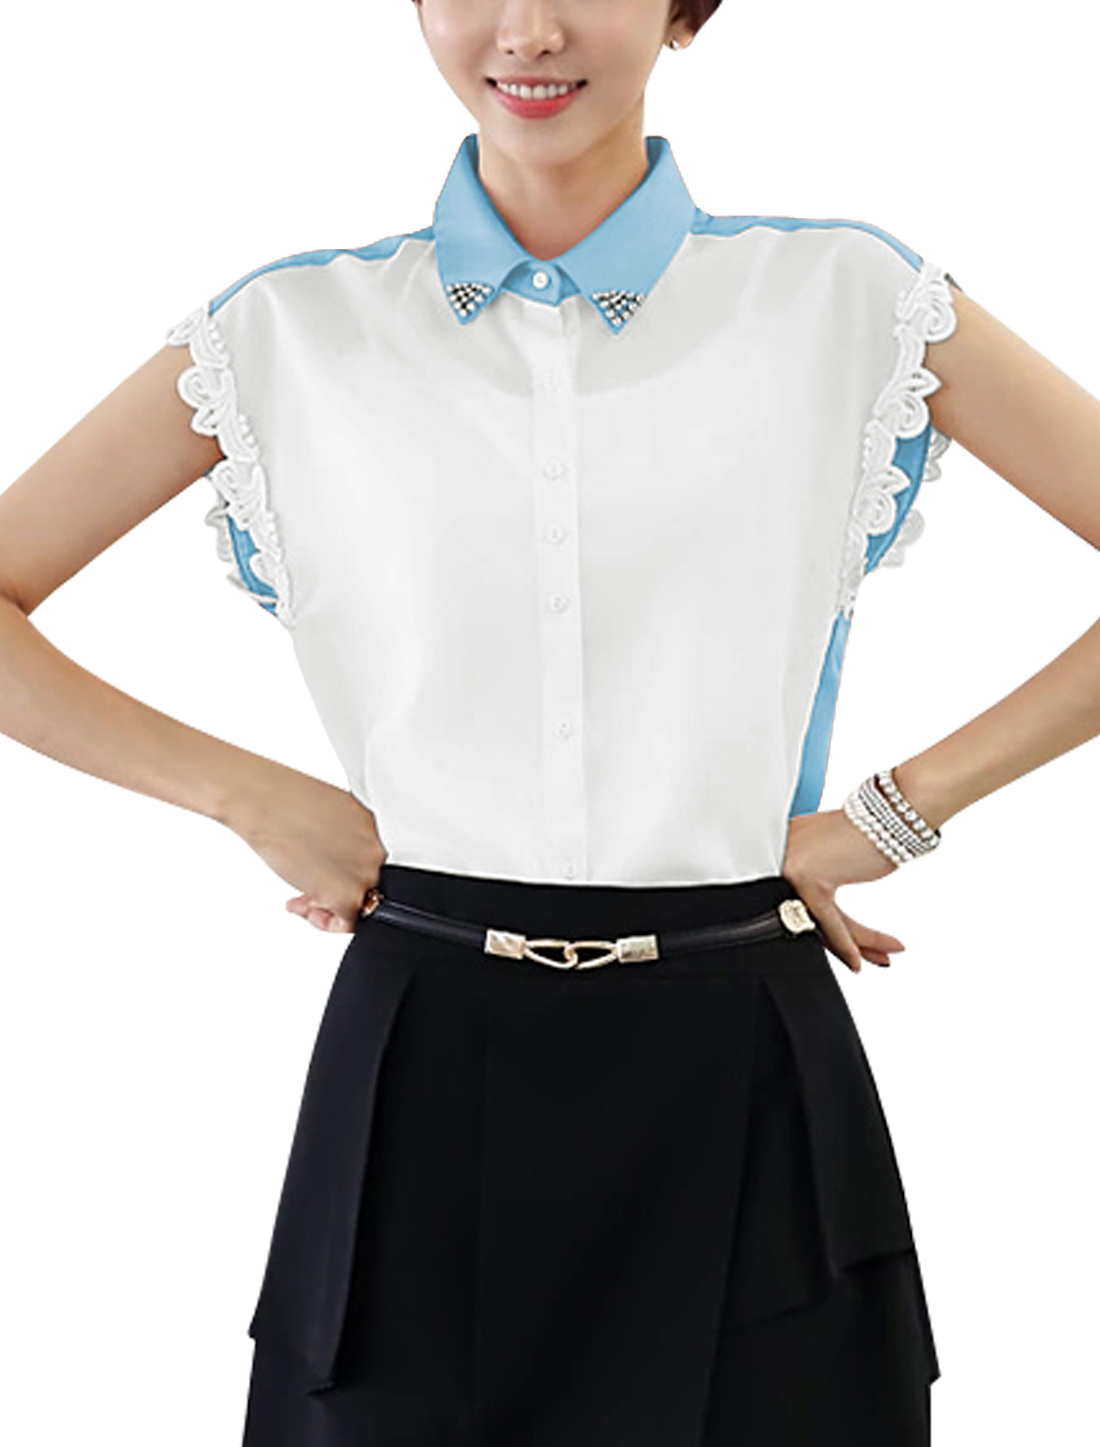 Women Point Collar Color Block Sheerness Elegant Chiffon Top Shirt Light Blue White S